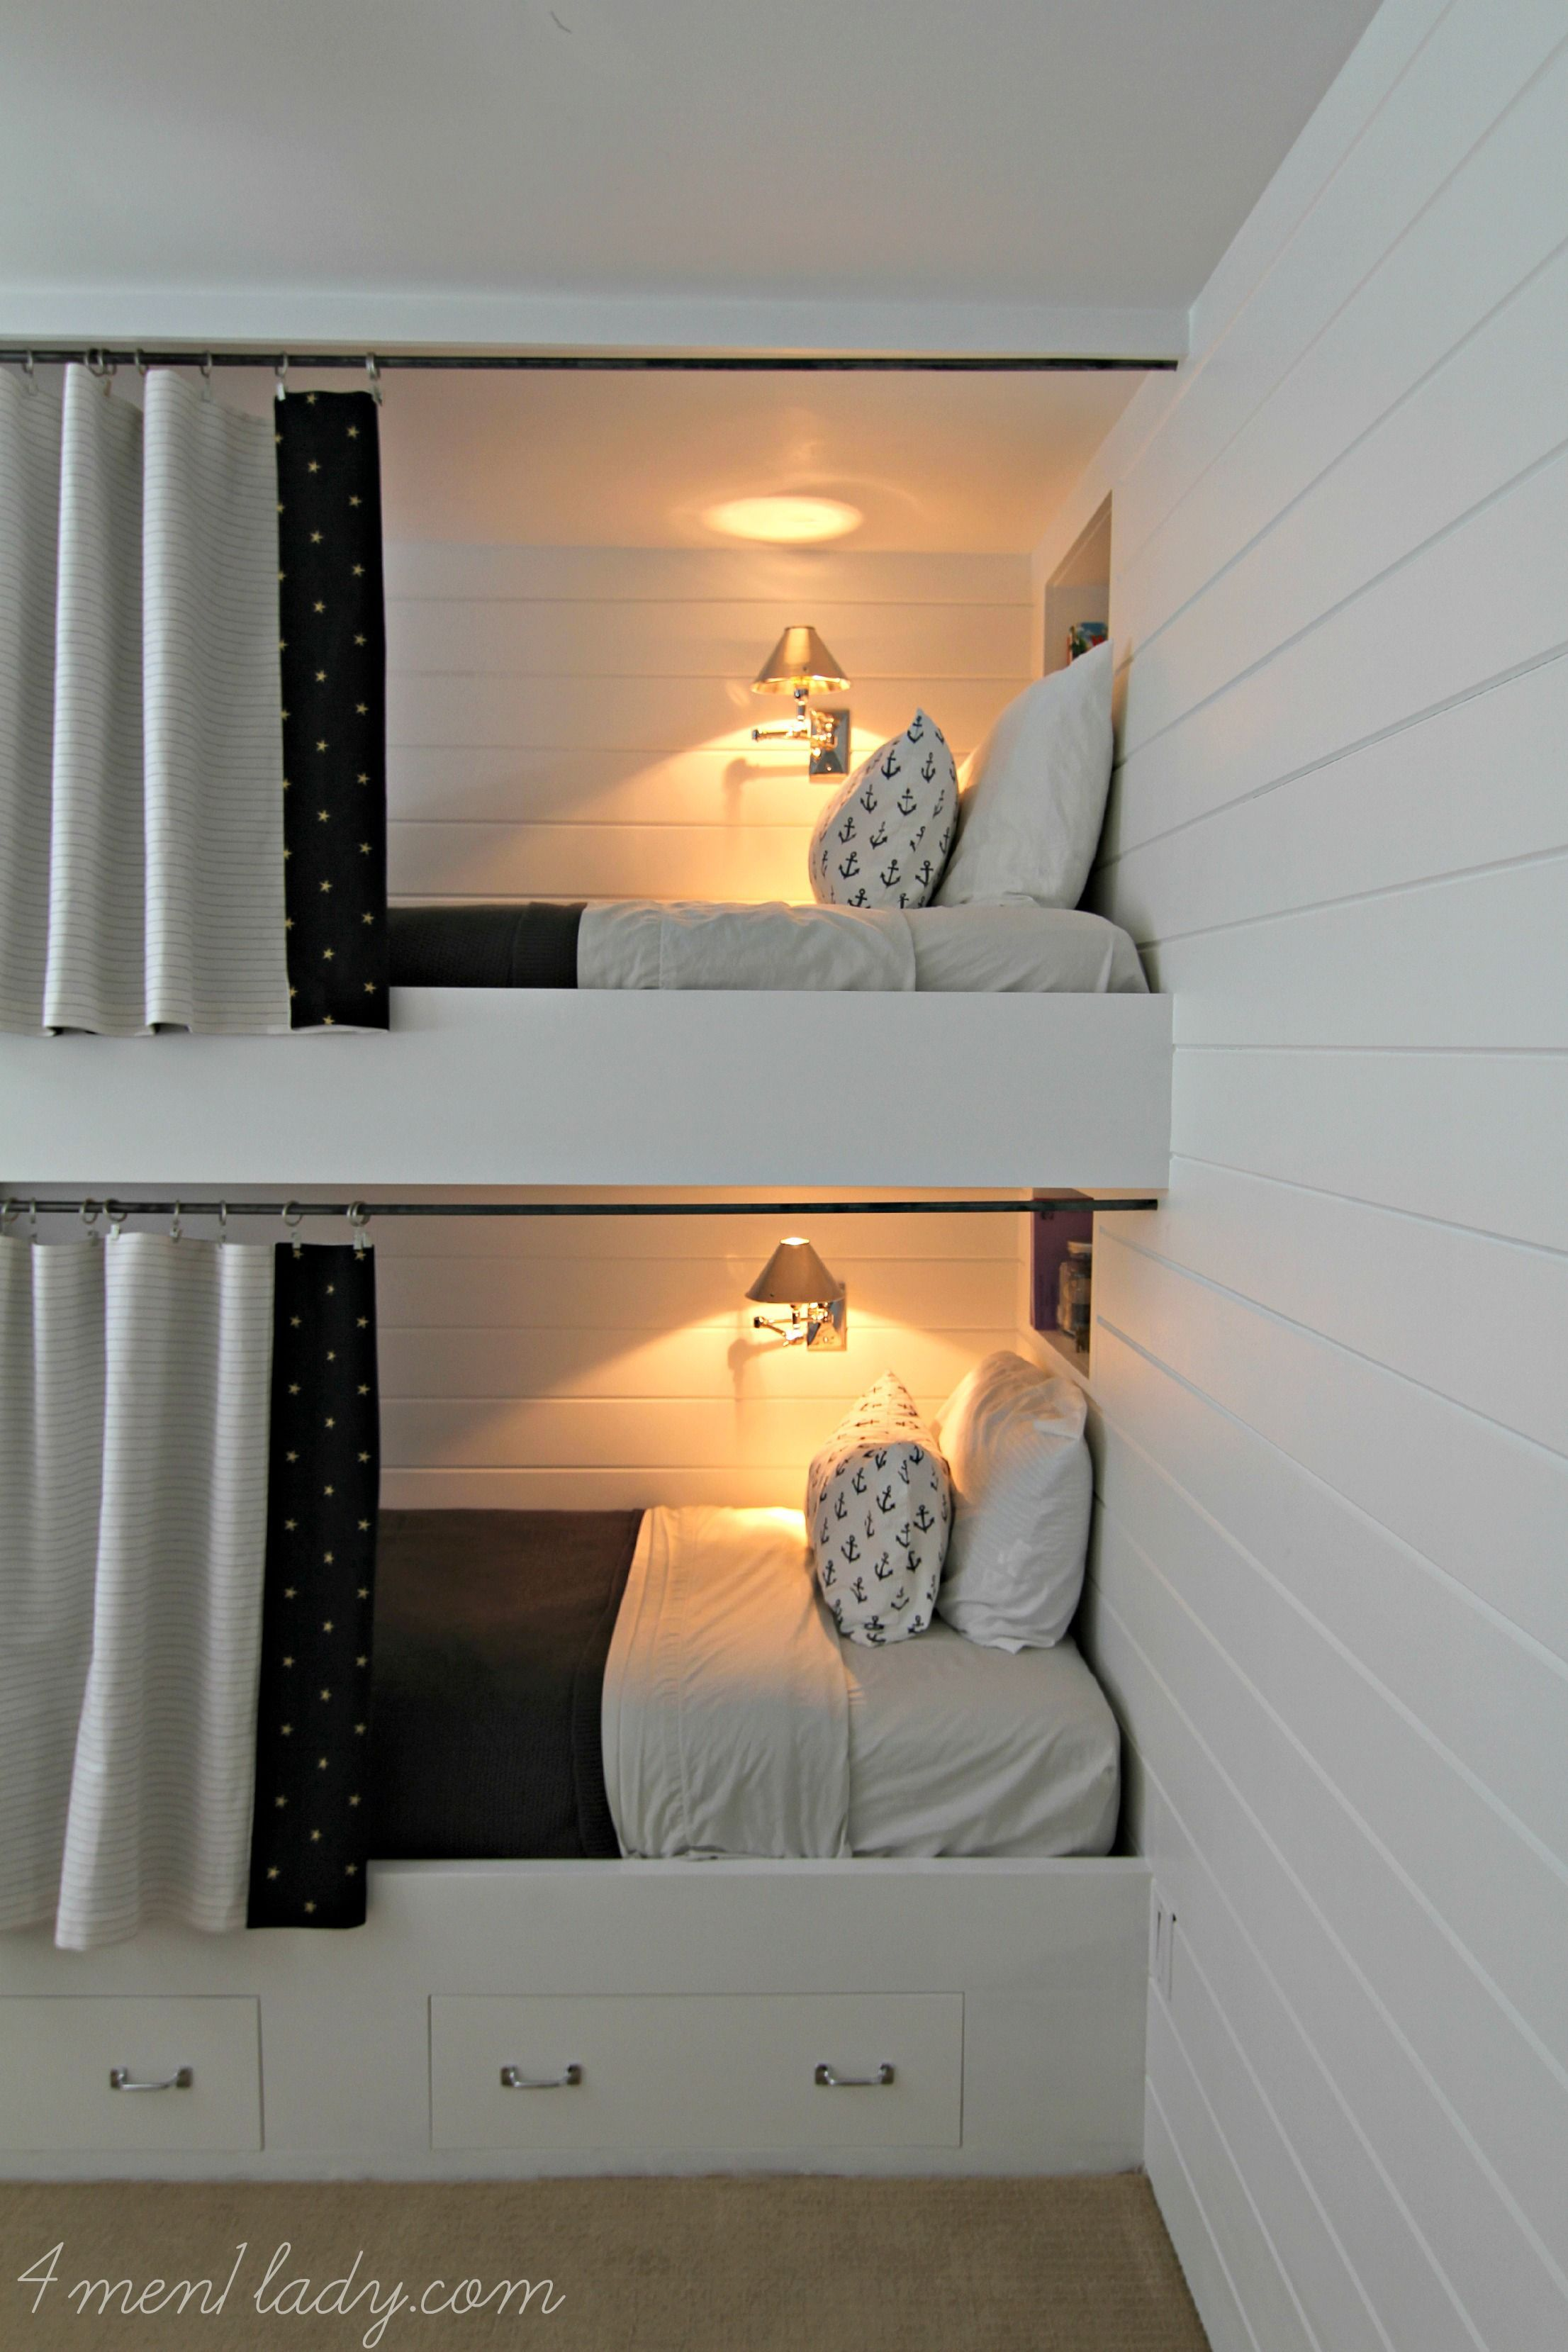 Elegant Photo Of Fabulous Bunk Bed Ideas To Inspire You Interior